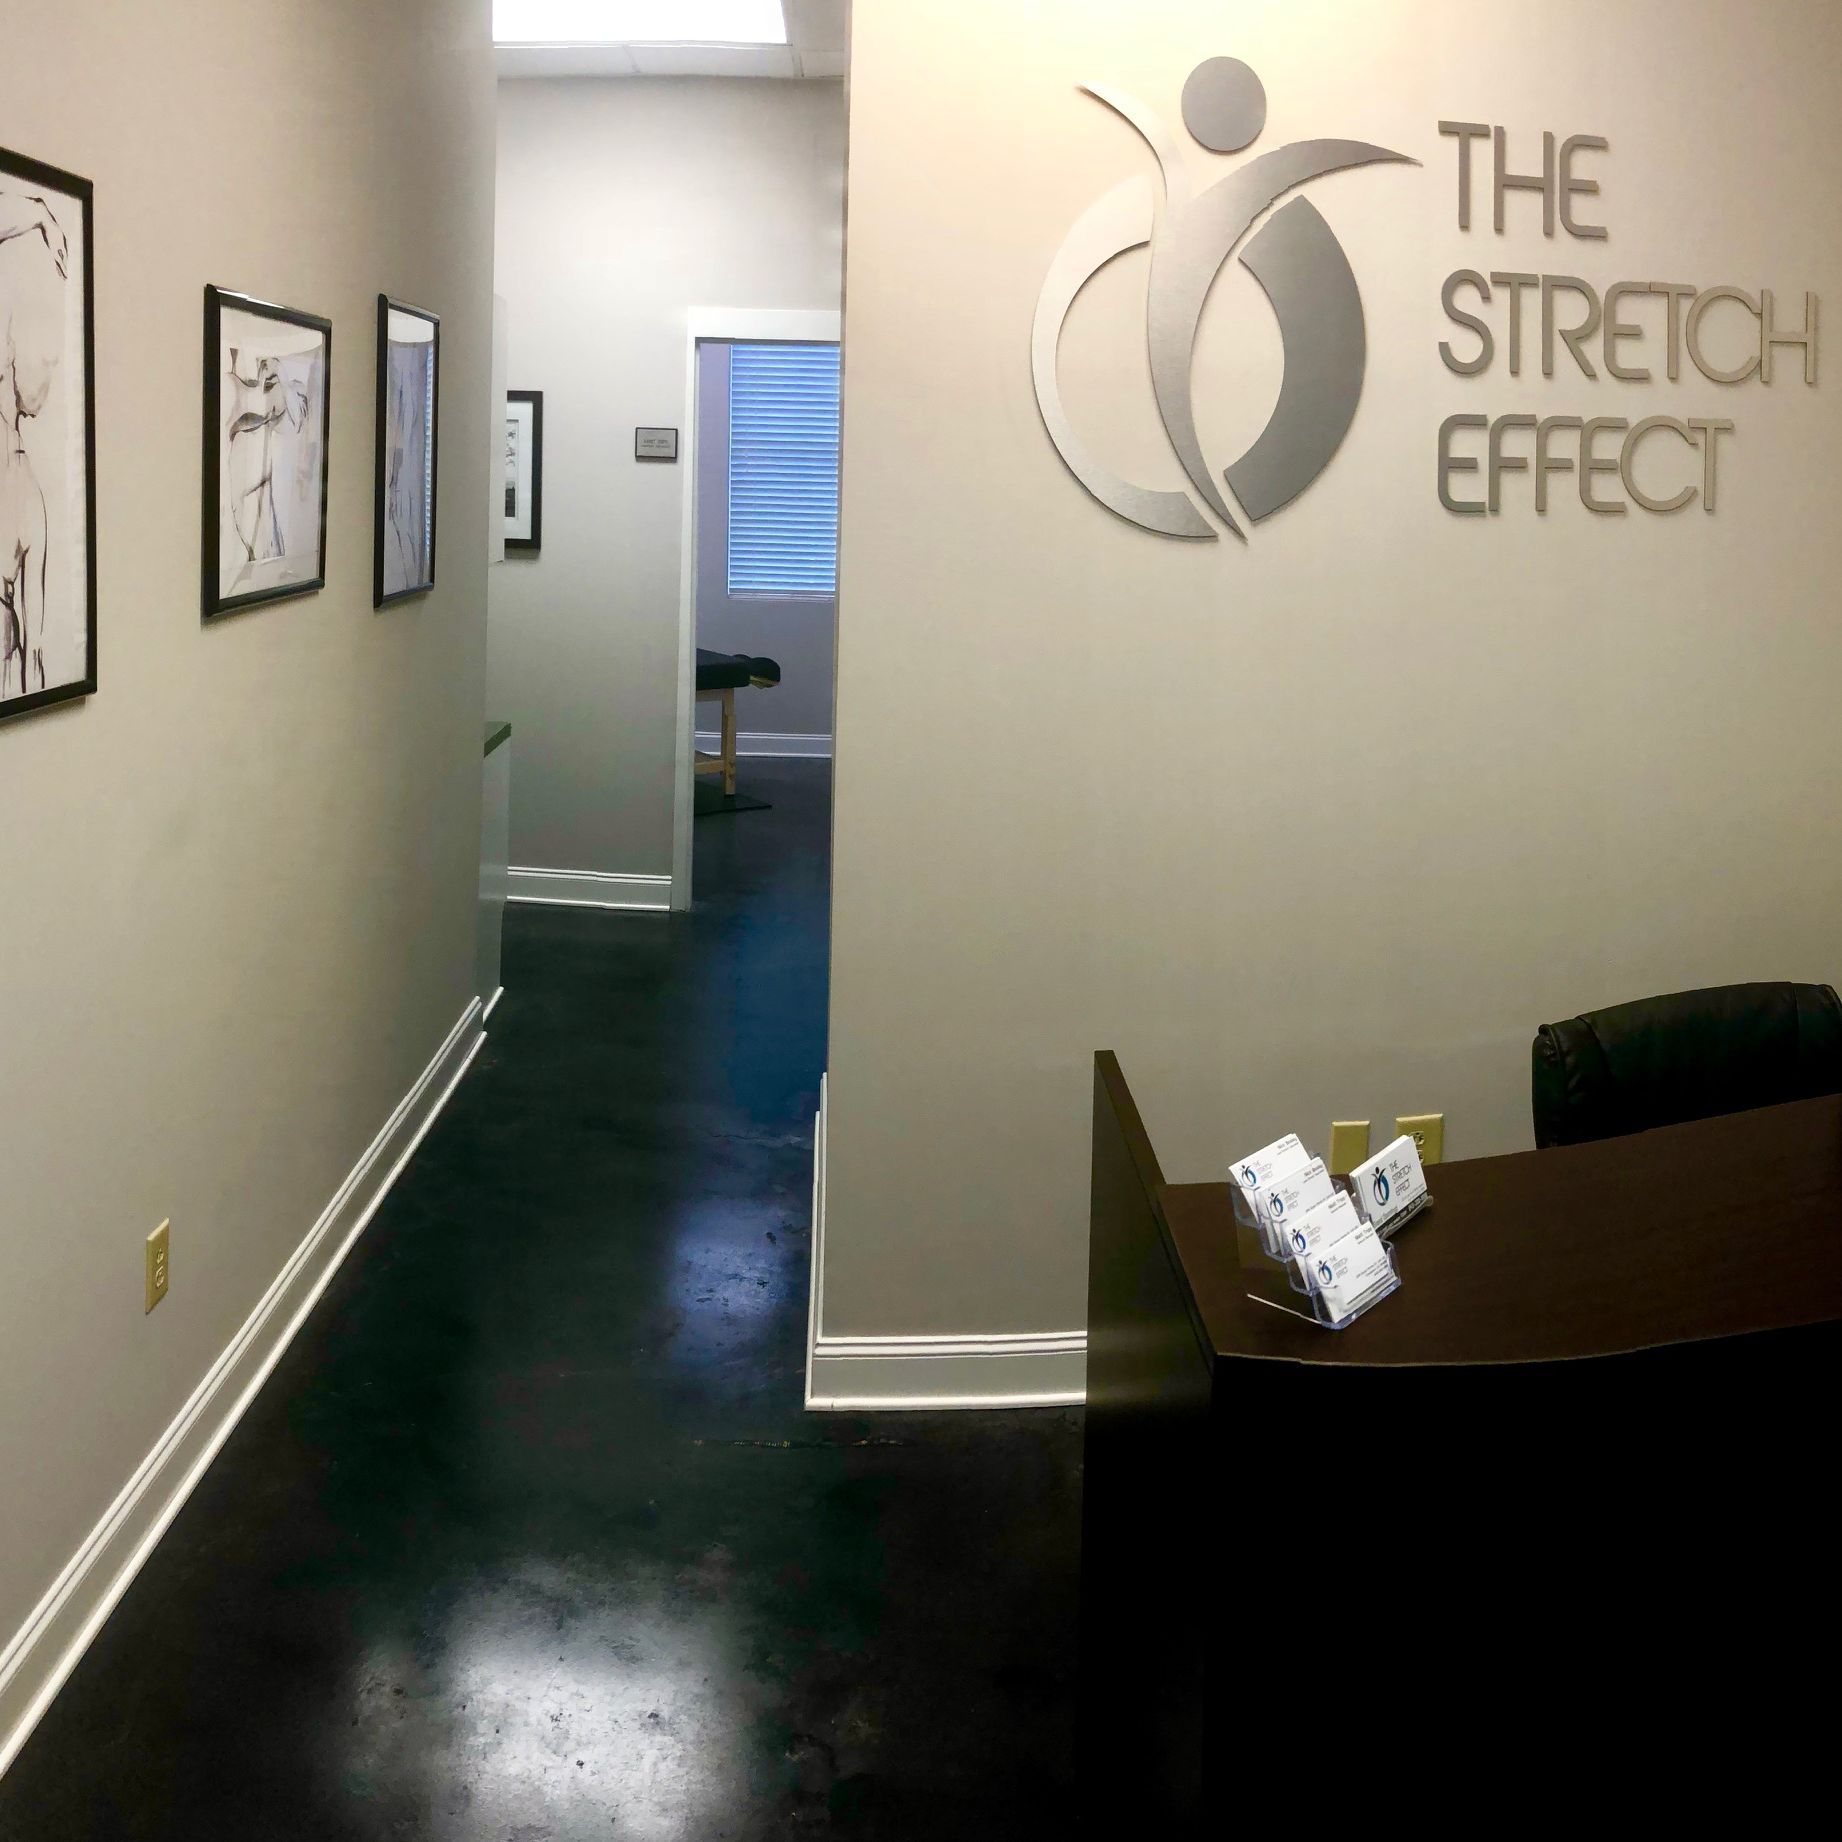 The Stretch Effect